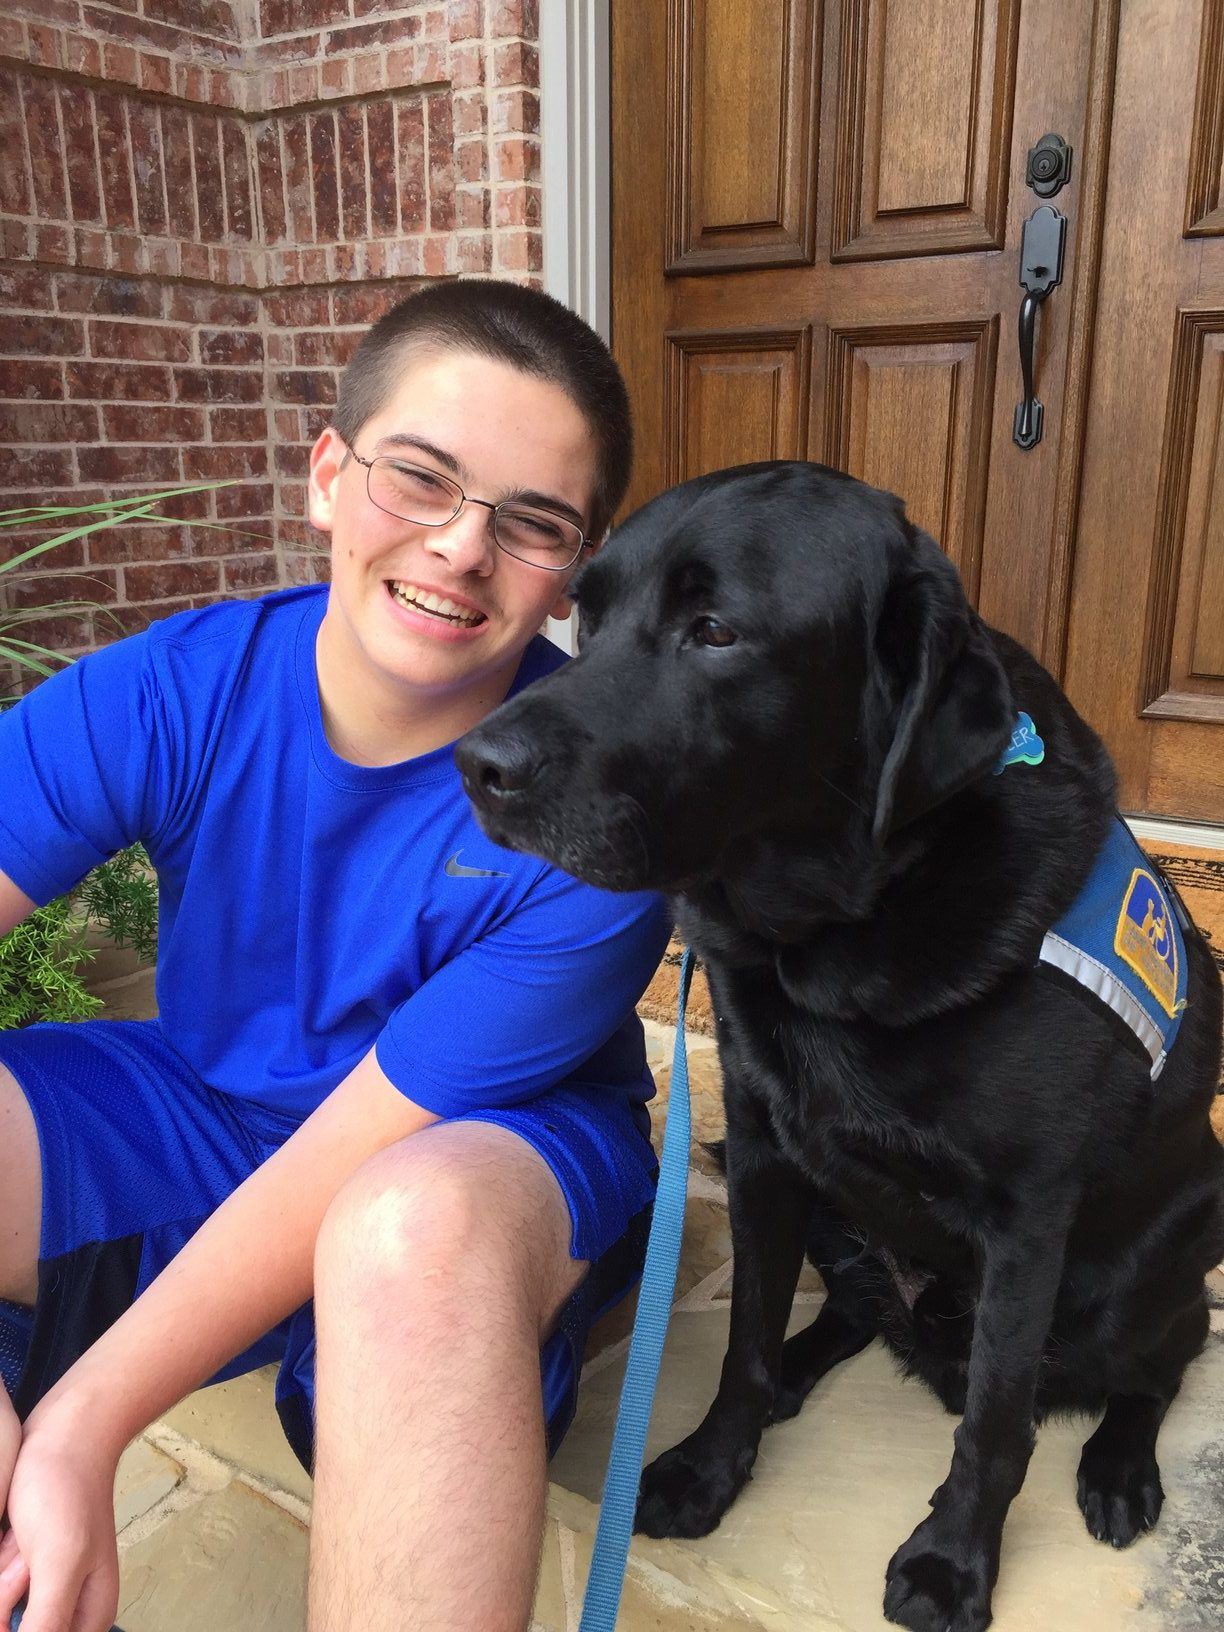 Adam O'Day, a 15-year-old student at Keller high school, sits with his service dog Tyler. O'Day and Tyler will speak at the annual DogFest at Canine Compaions for Independence South Central Location on Oct. 1. Photo courtesy Anna O'Day.